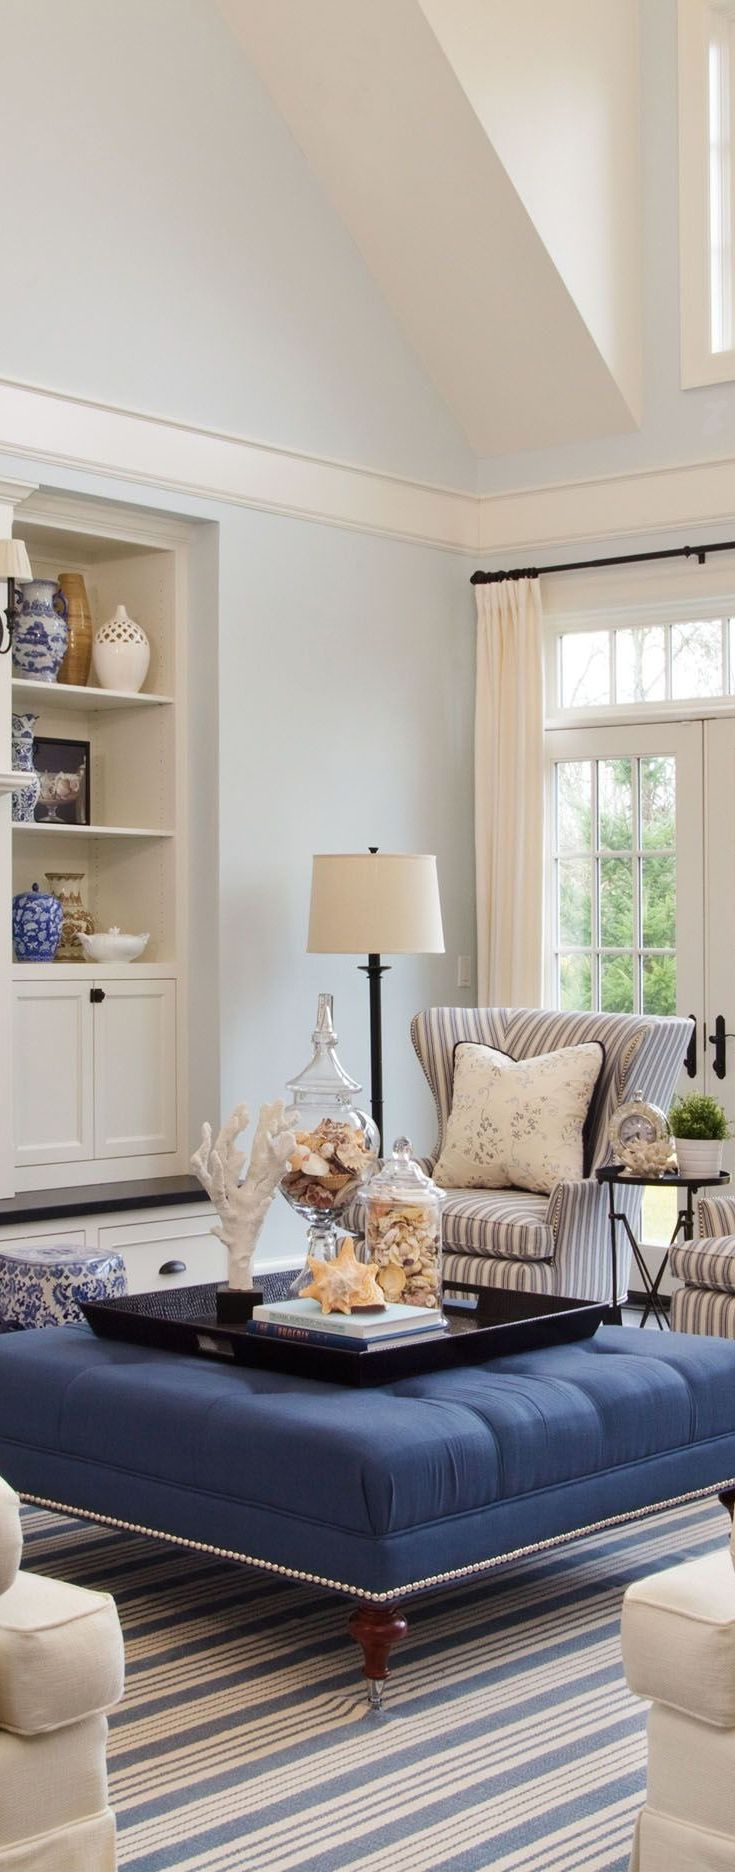 160+ Best Coffee Tables Ideas | Coffee table design, Classic style ...